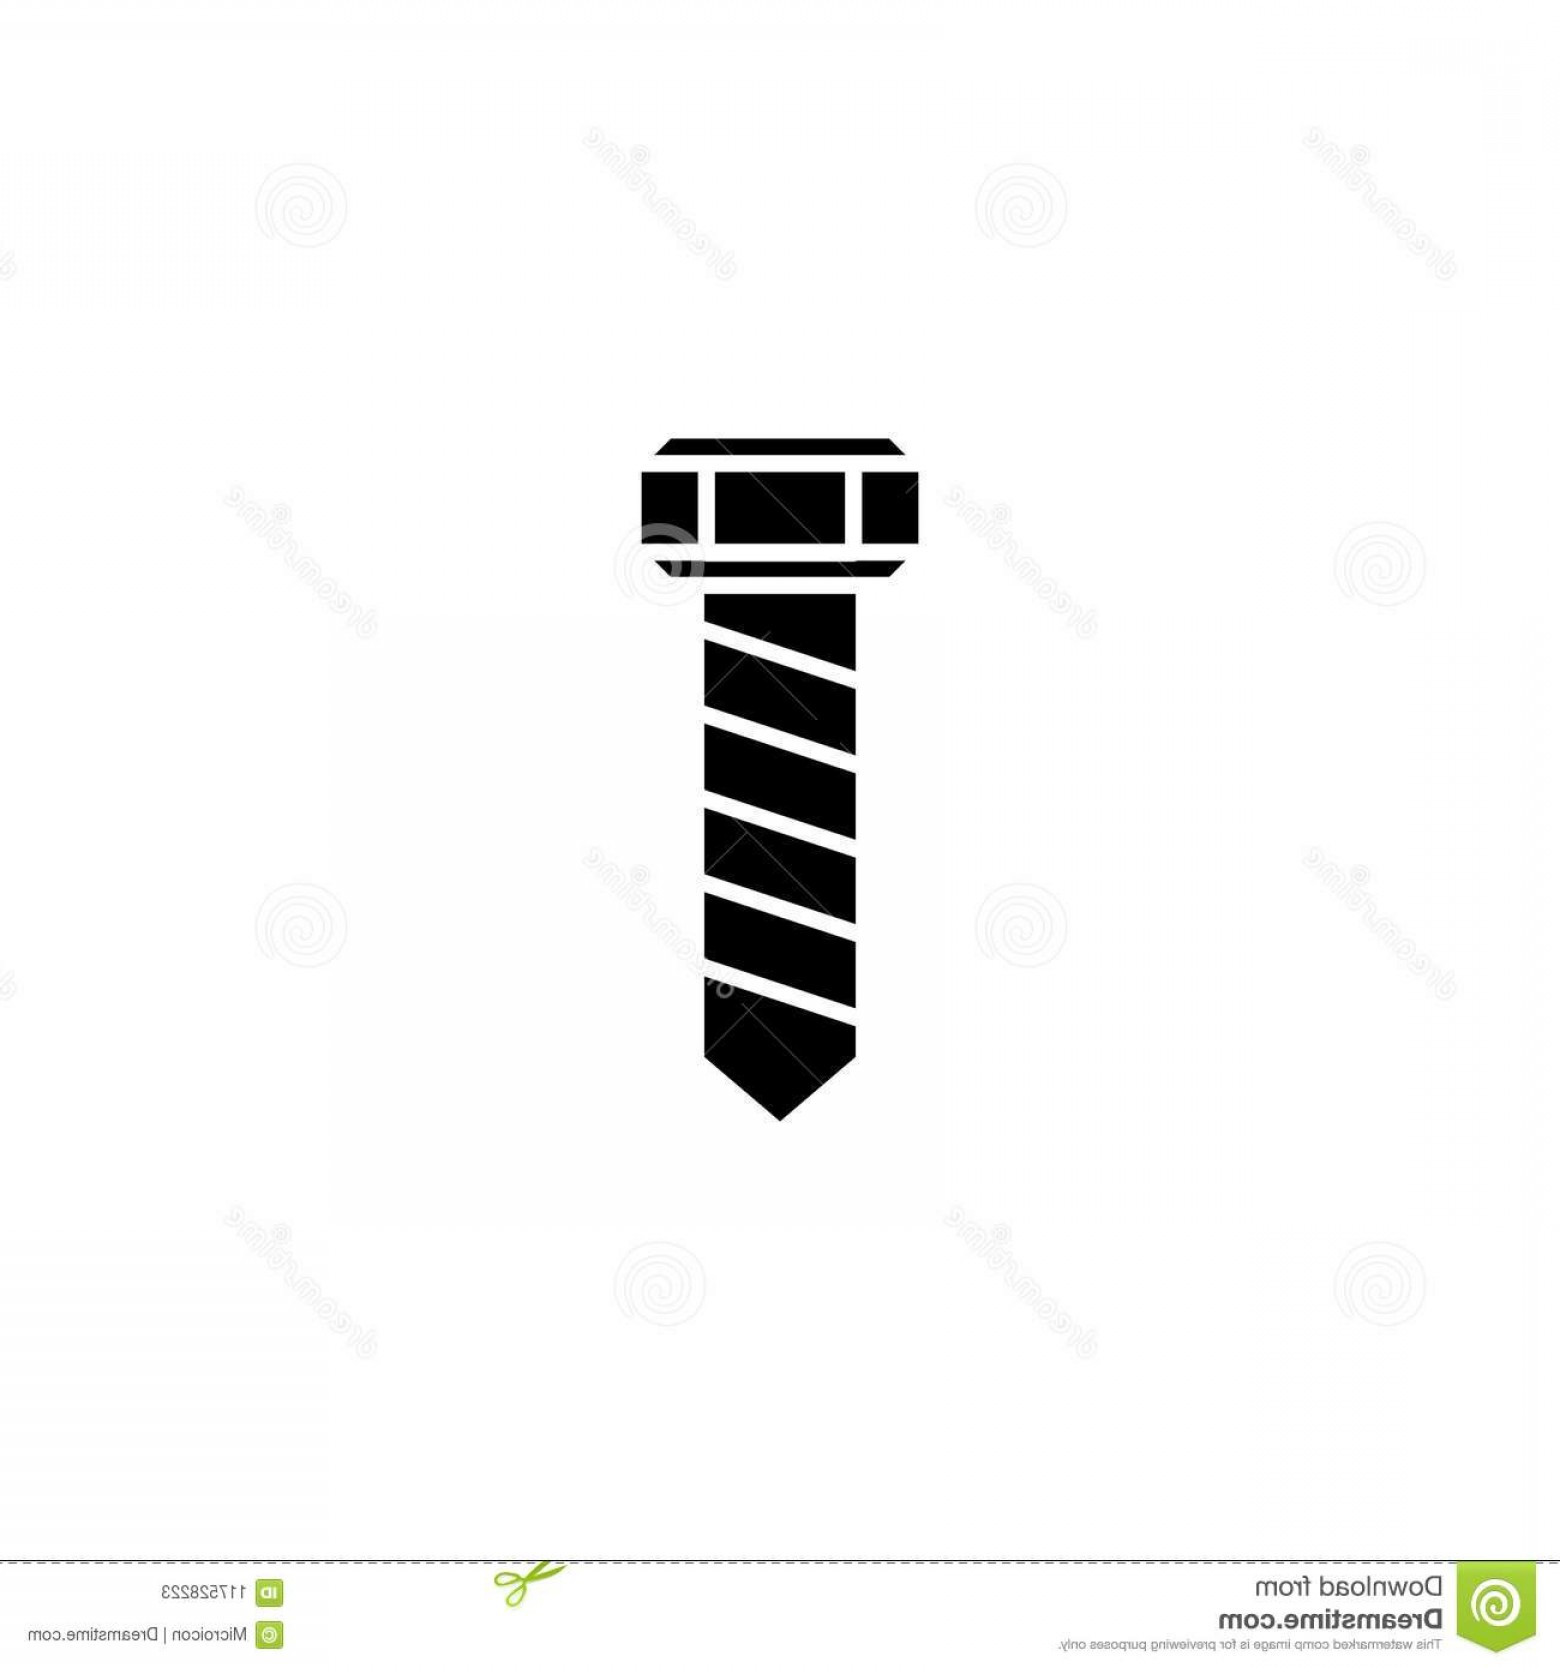 Screw Vector: Screw Bolt Black Icon Concept Flat Vector Website Sign Symbol Illustration Image